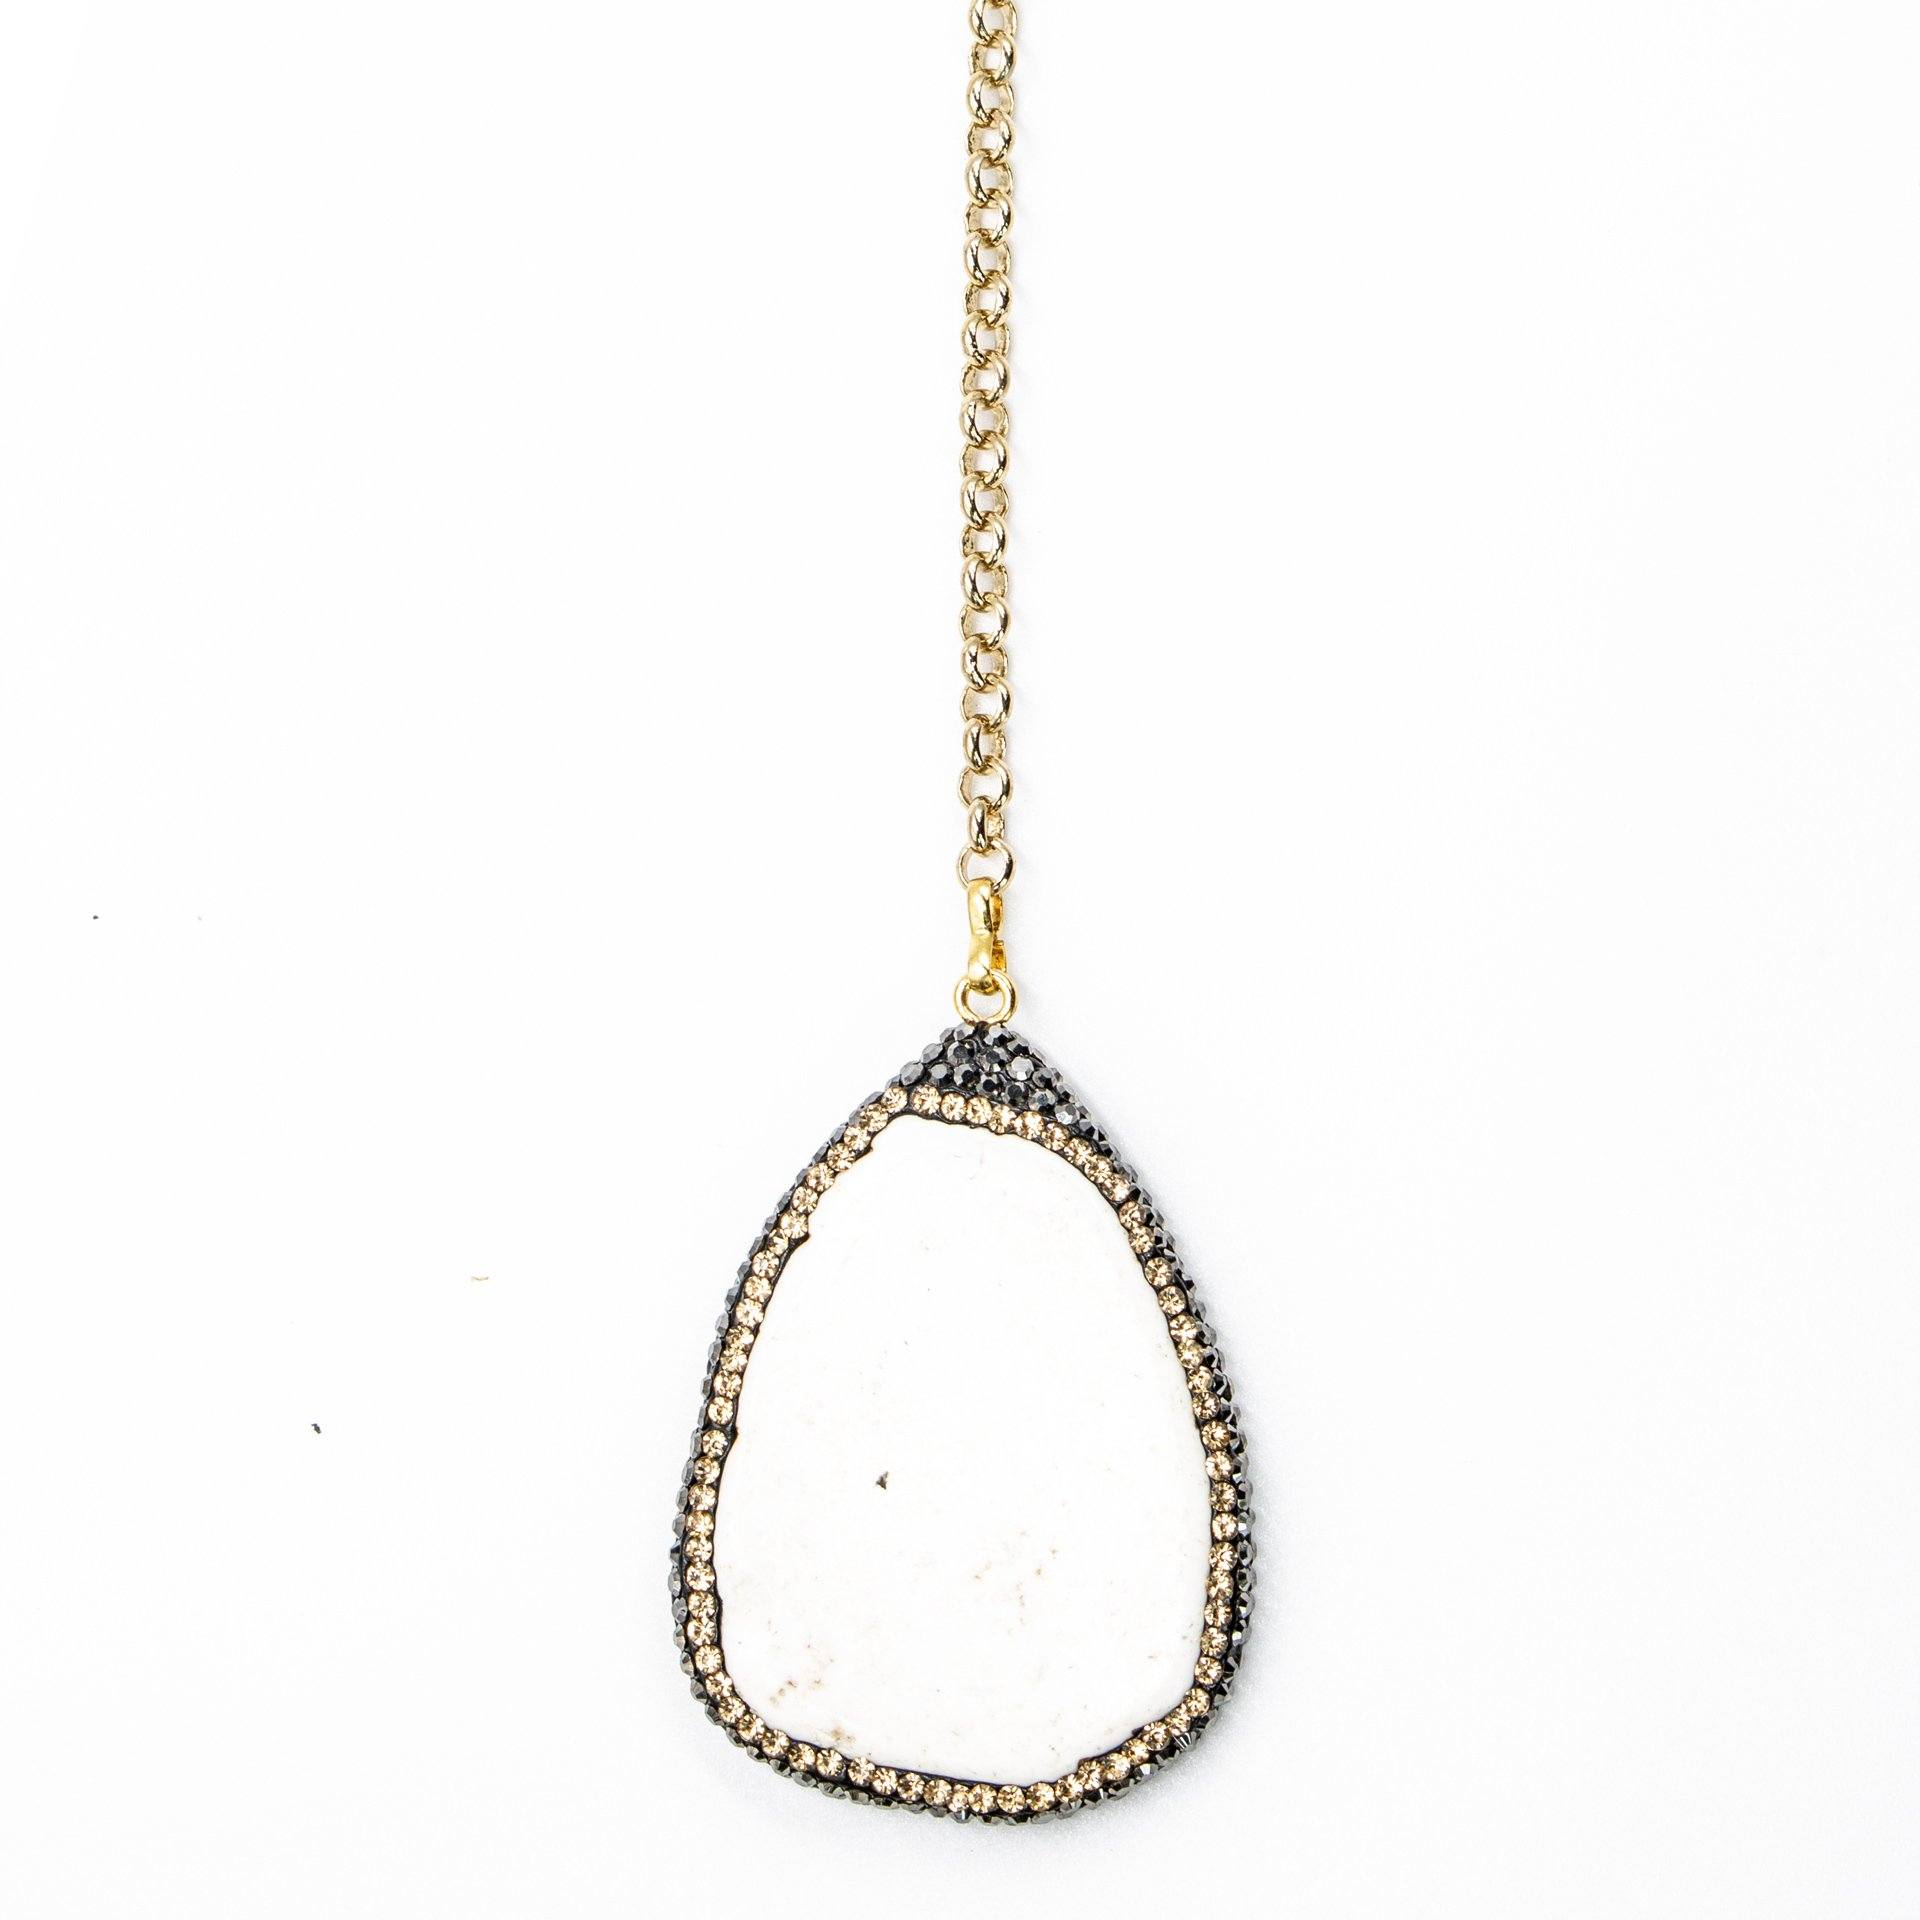 Howlite Pave Lariat Necklace Close Up